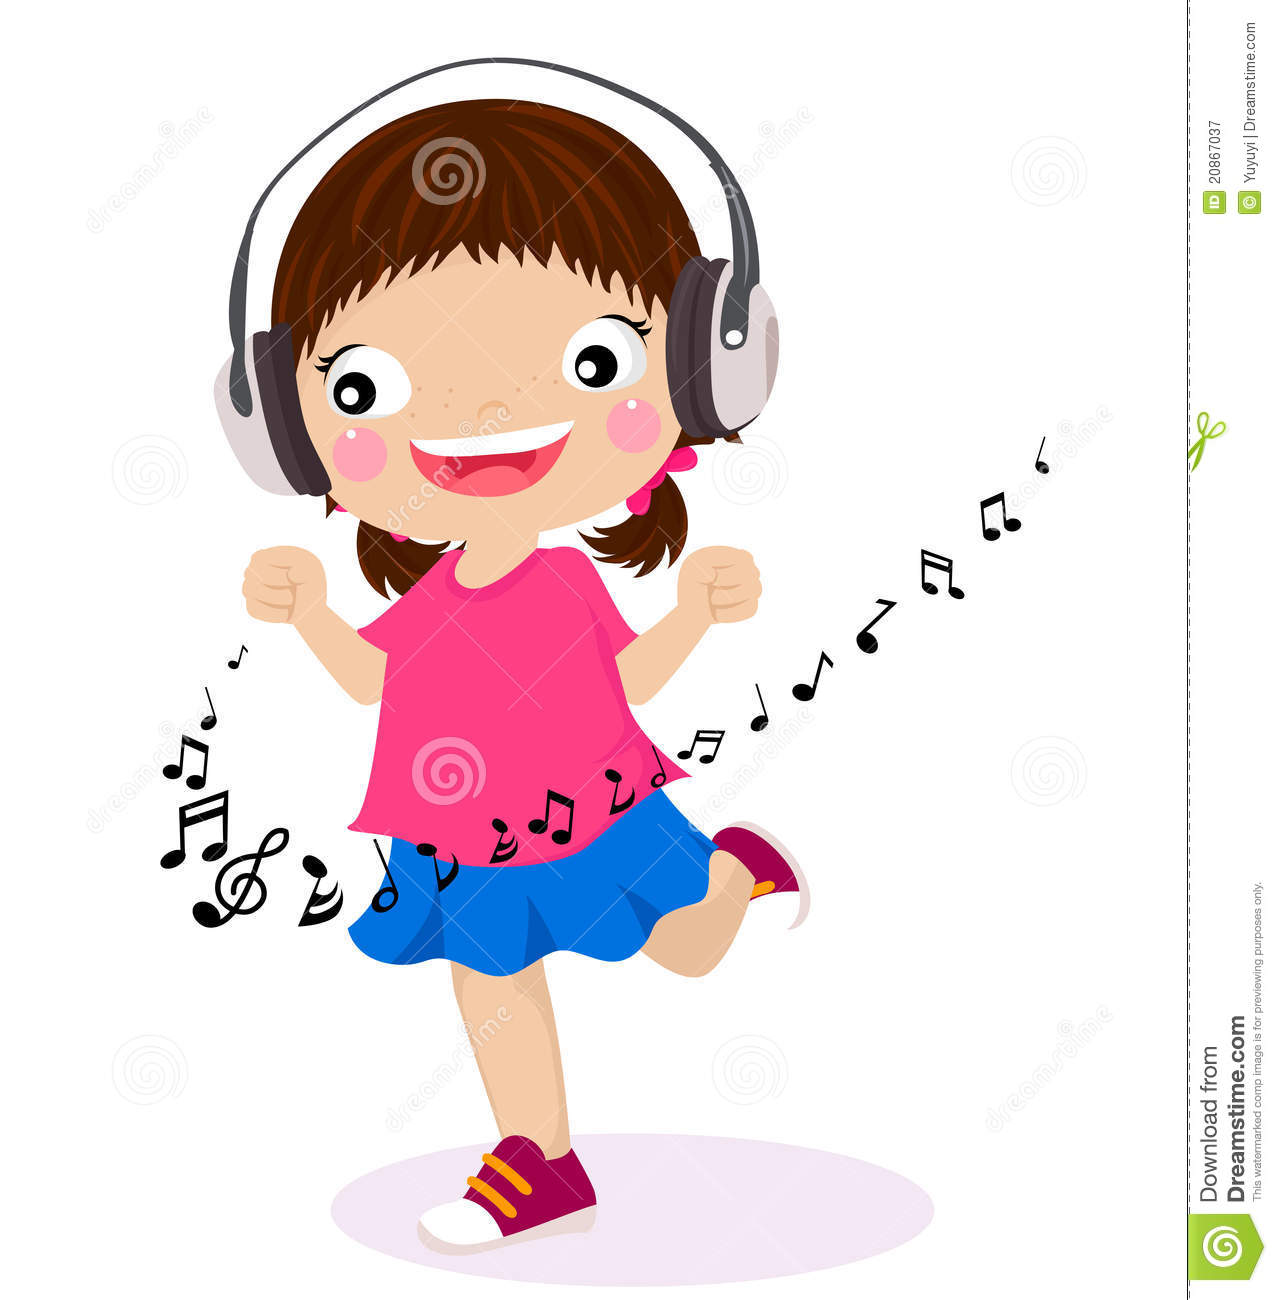 dancing girl listen music in clipart panda free clipart images rh clipartpanda com Red Pony Beads Clip Art Reindeer Face Clip Art